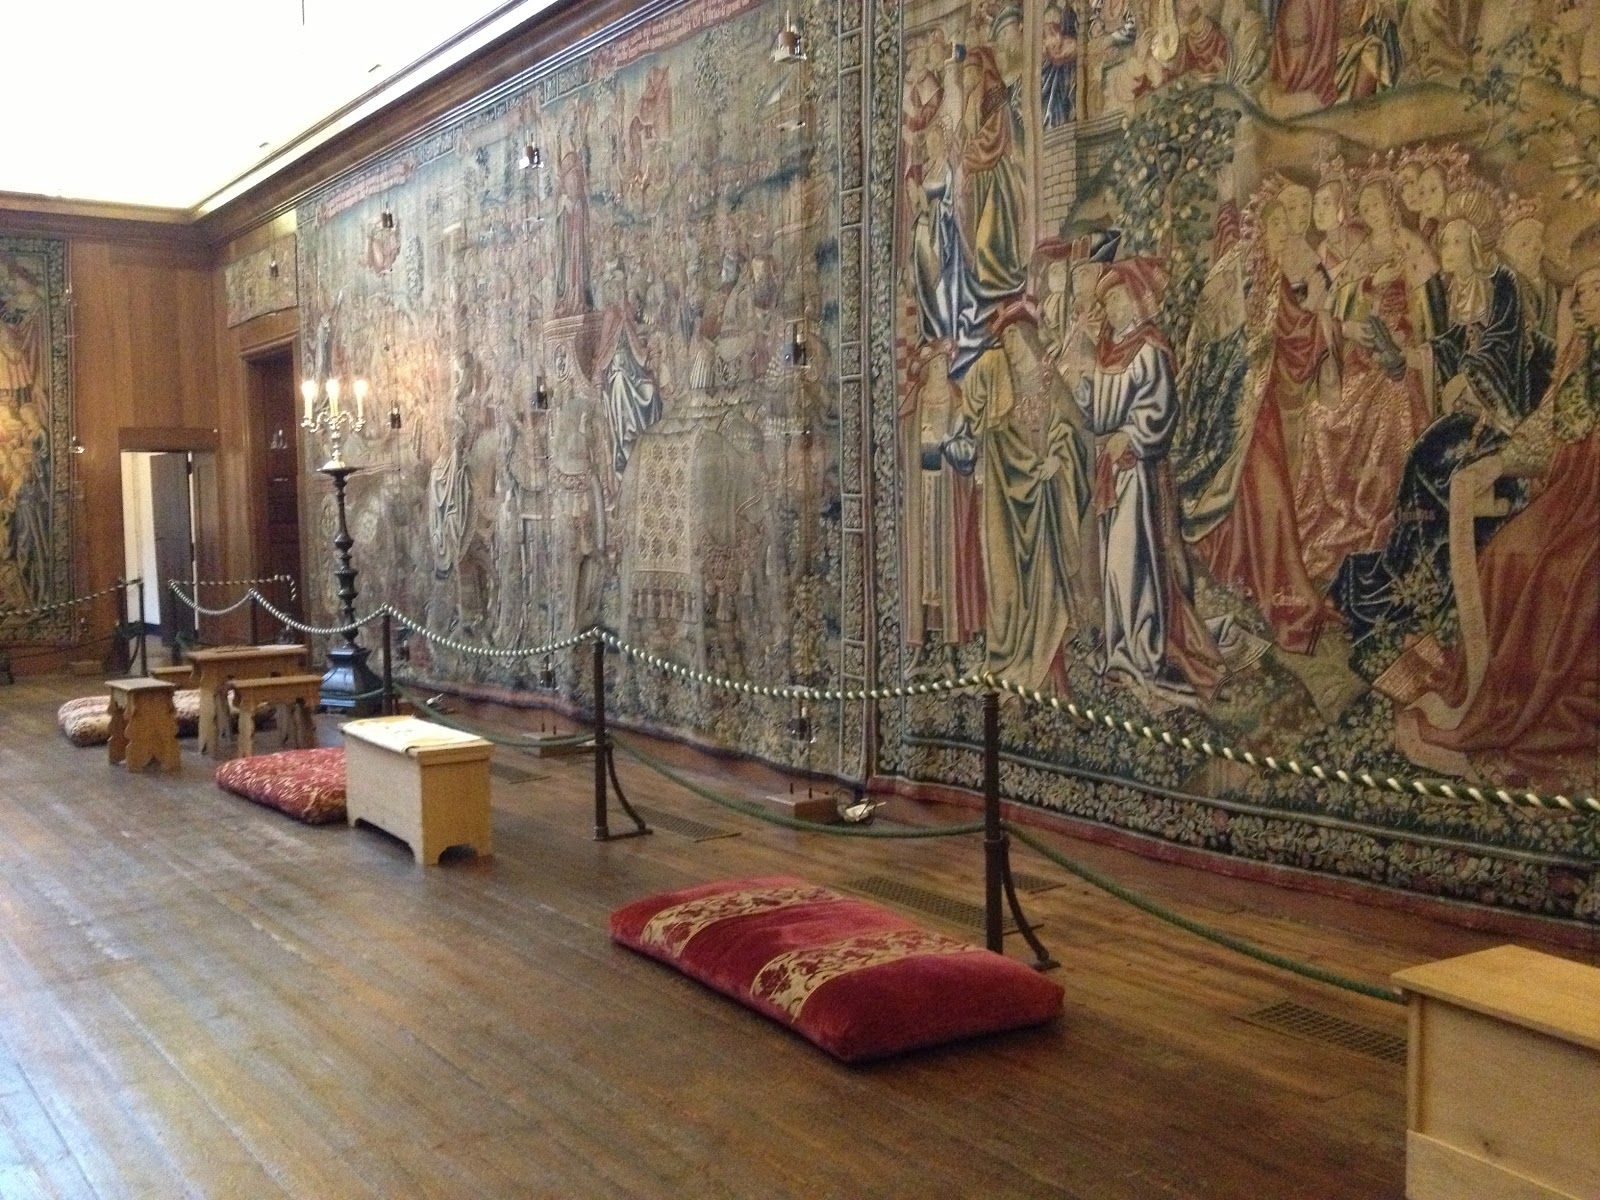 Henry VIII s tapestries at Hampton Court palace Tapestries were so